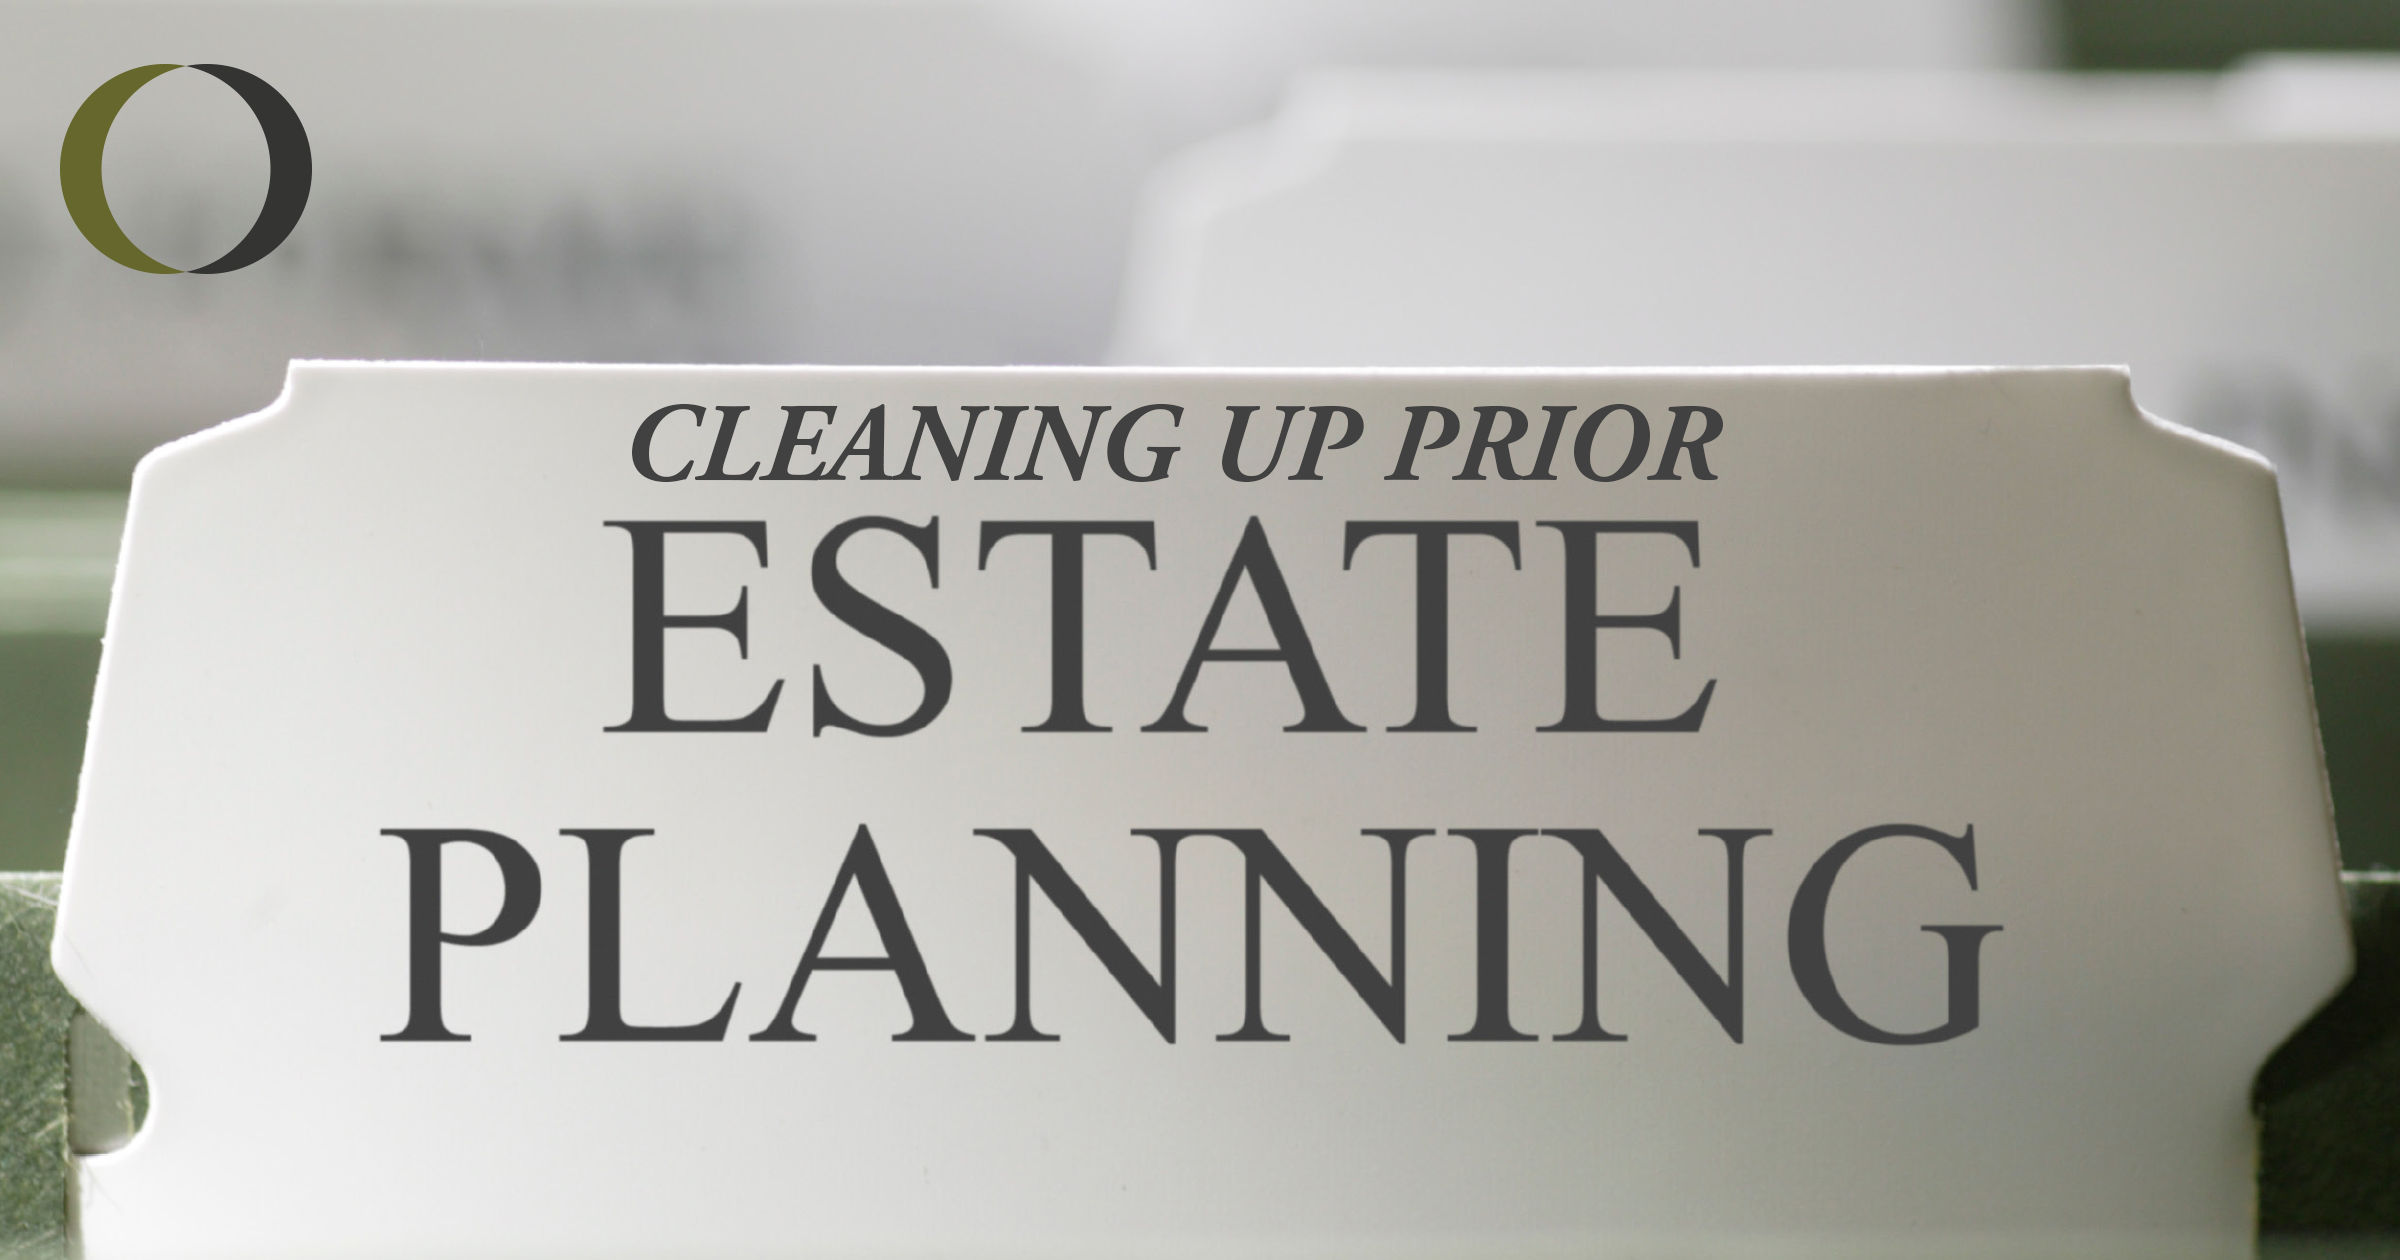 Cleaning Up Prior Estate Planning